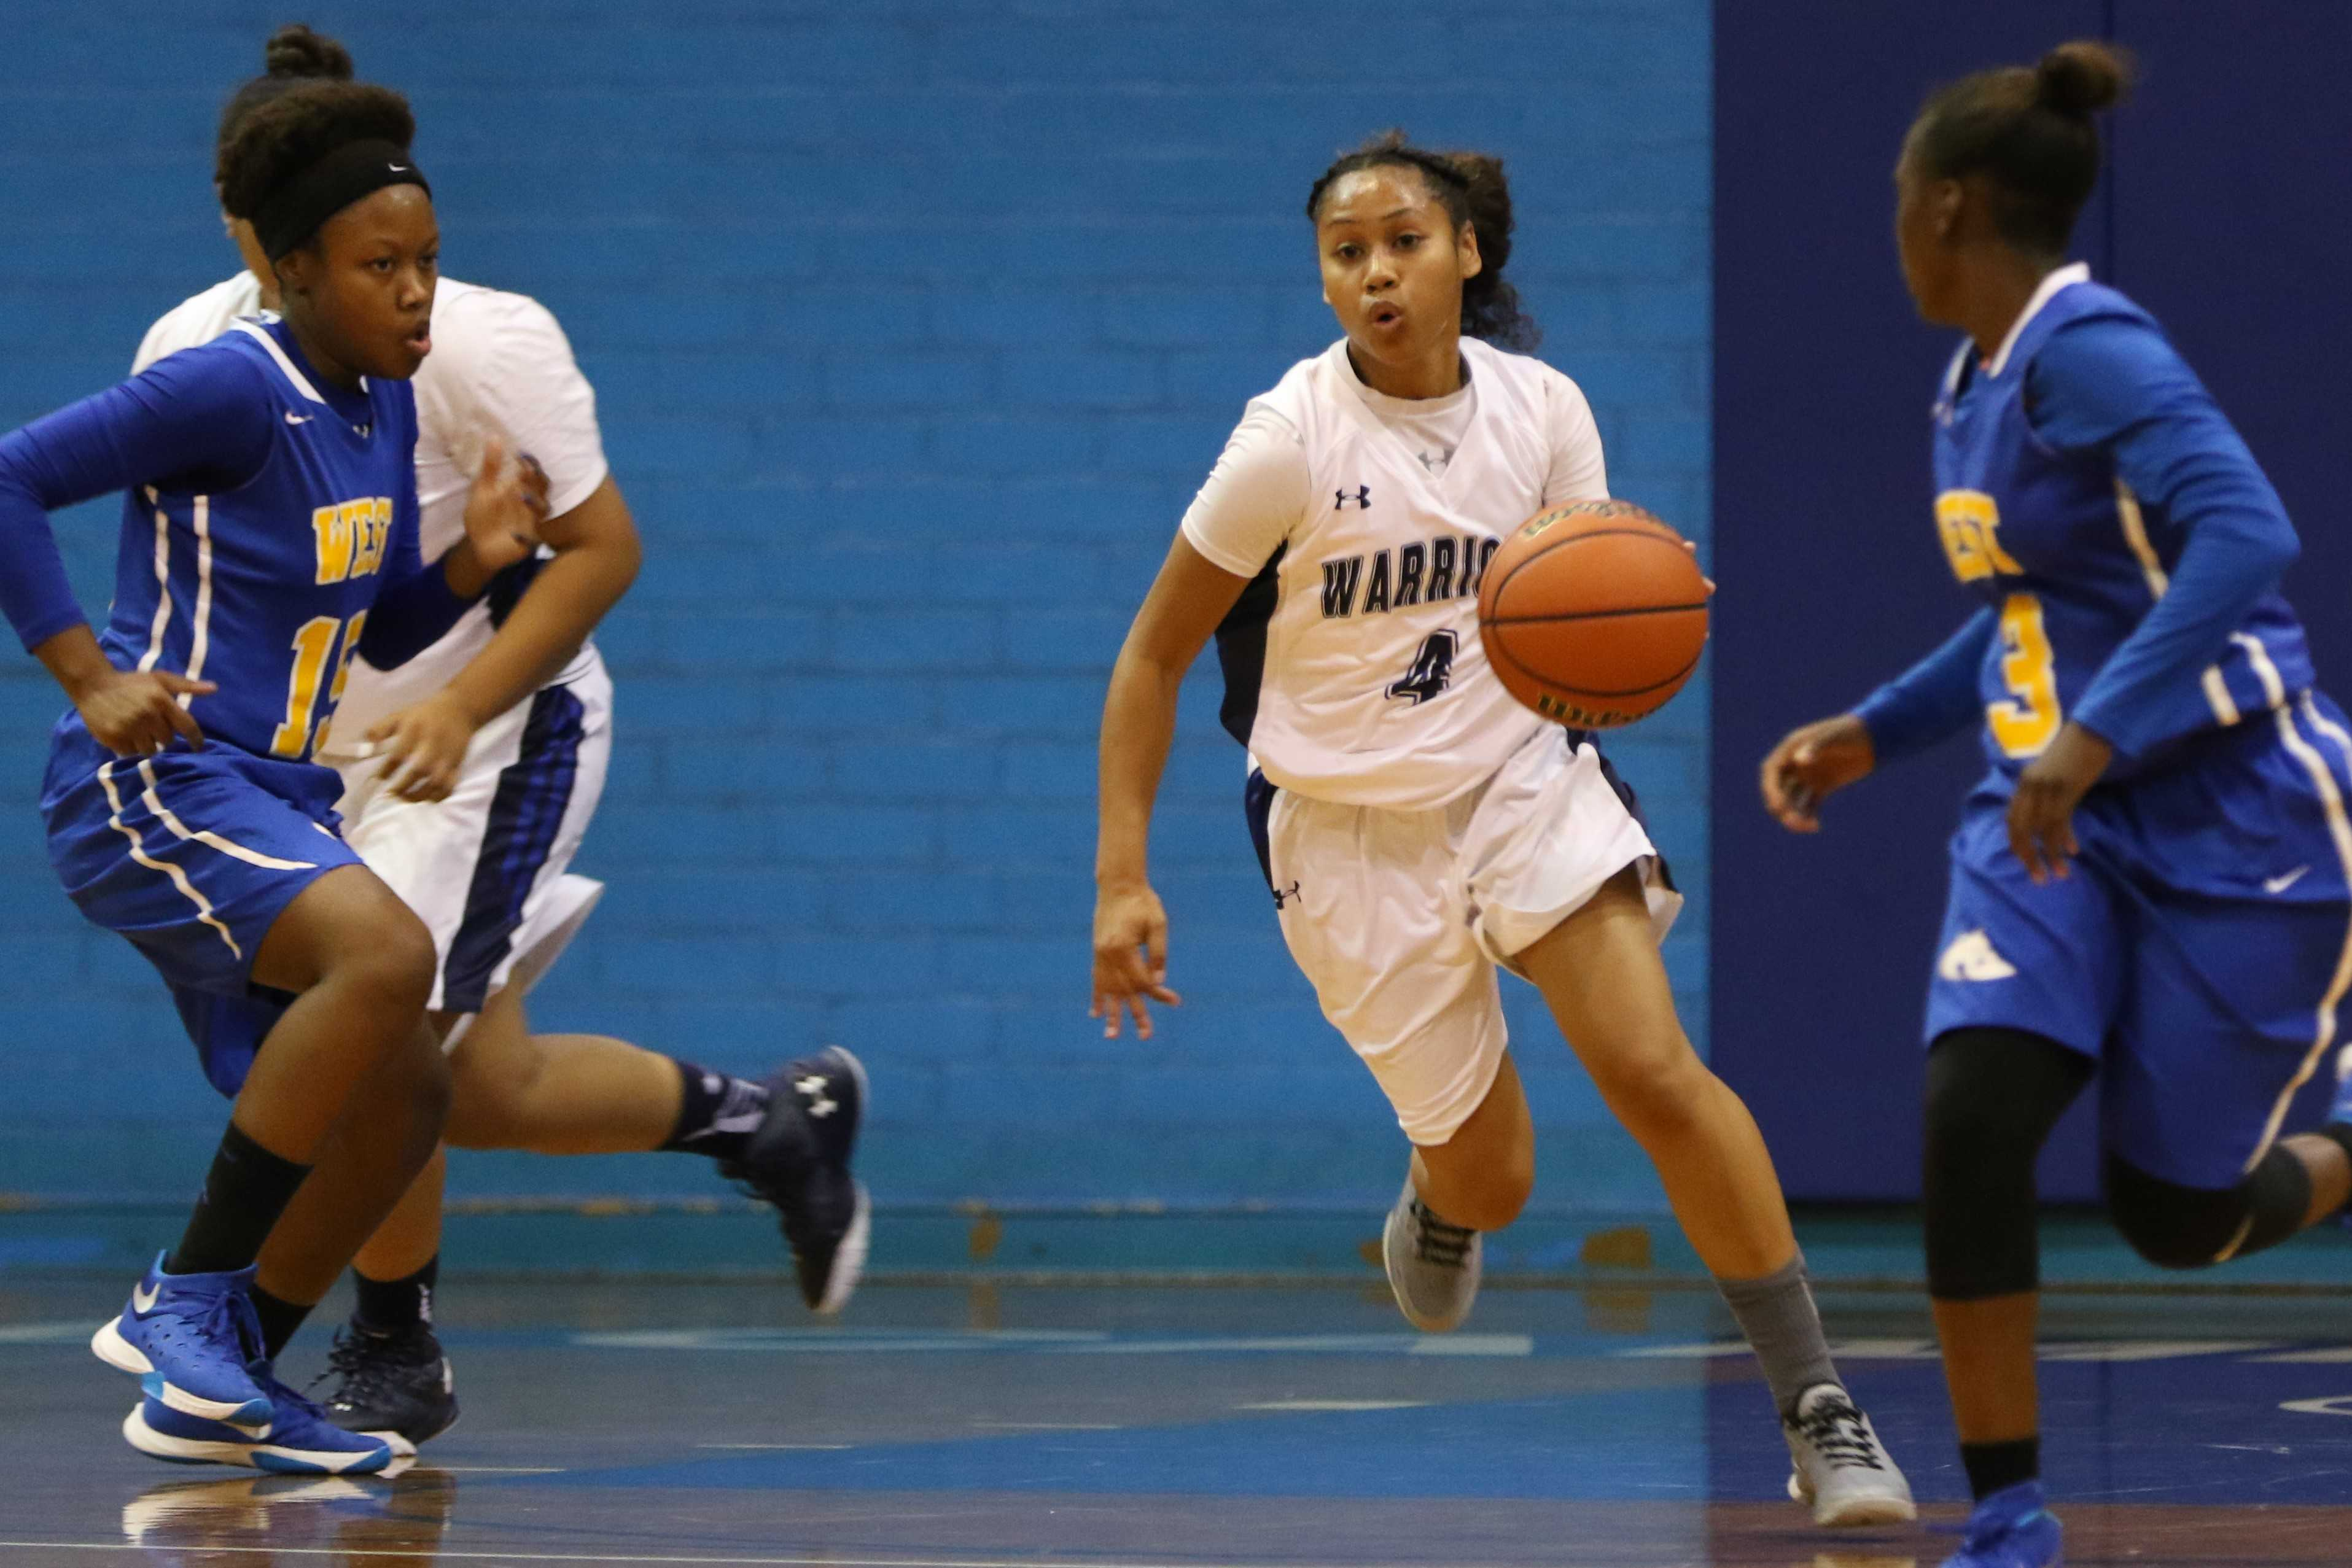 Women's basketball team takes home opener over West L.A. College